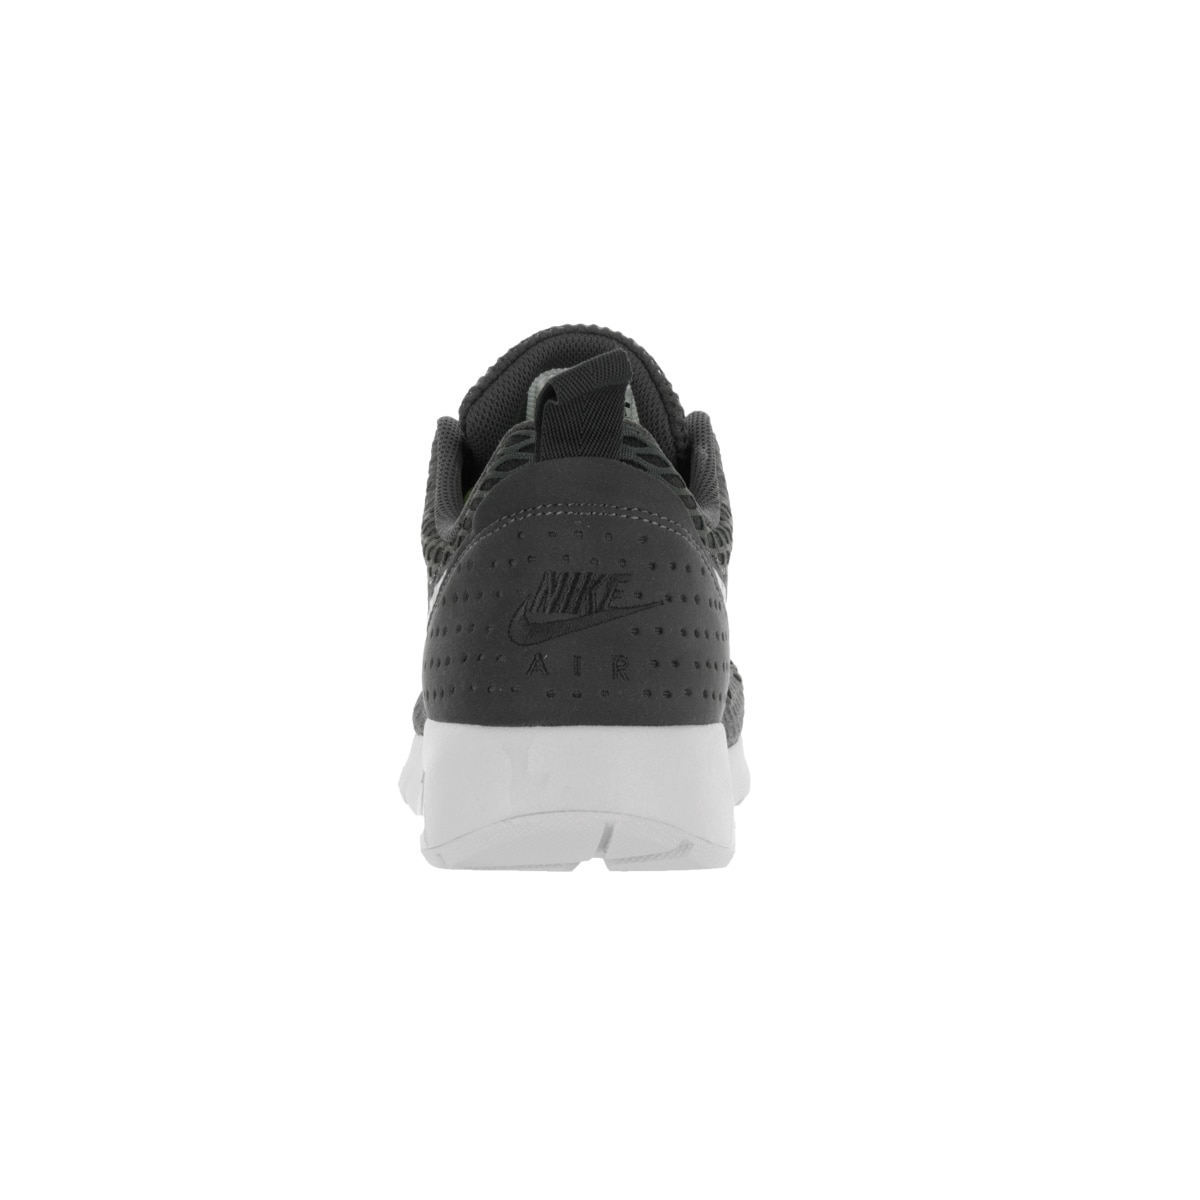 super popular 4c3fa 1d6f1 Shop Nike Men s Air Max Tavas SE Anthracite, Pure Platinum Running Shoe -  Free Shipping Today - Overstock - 13404780